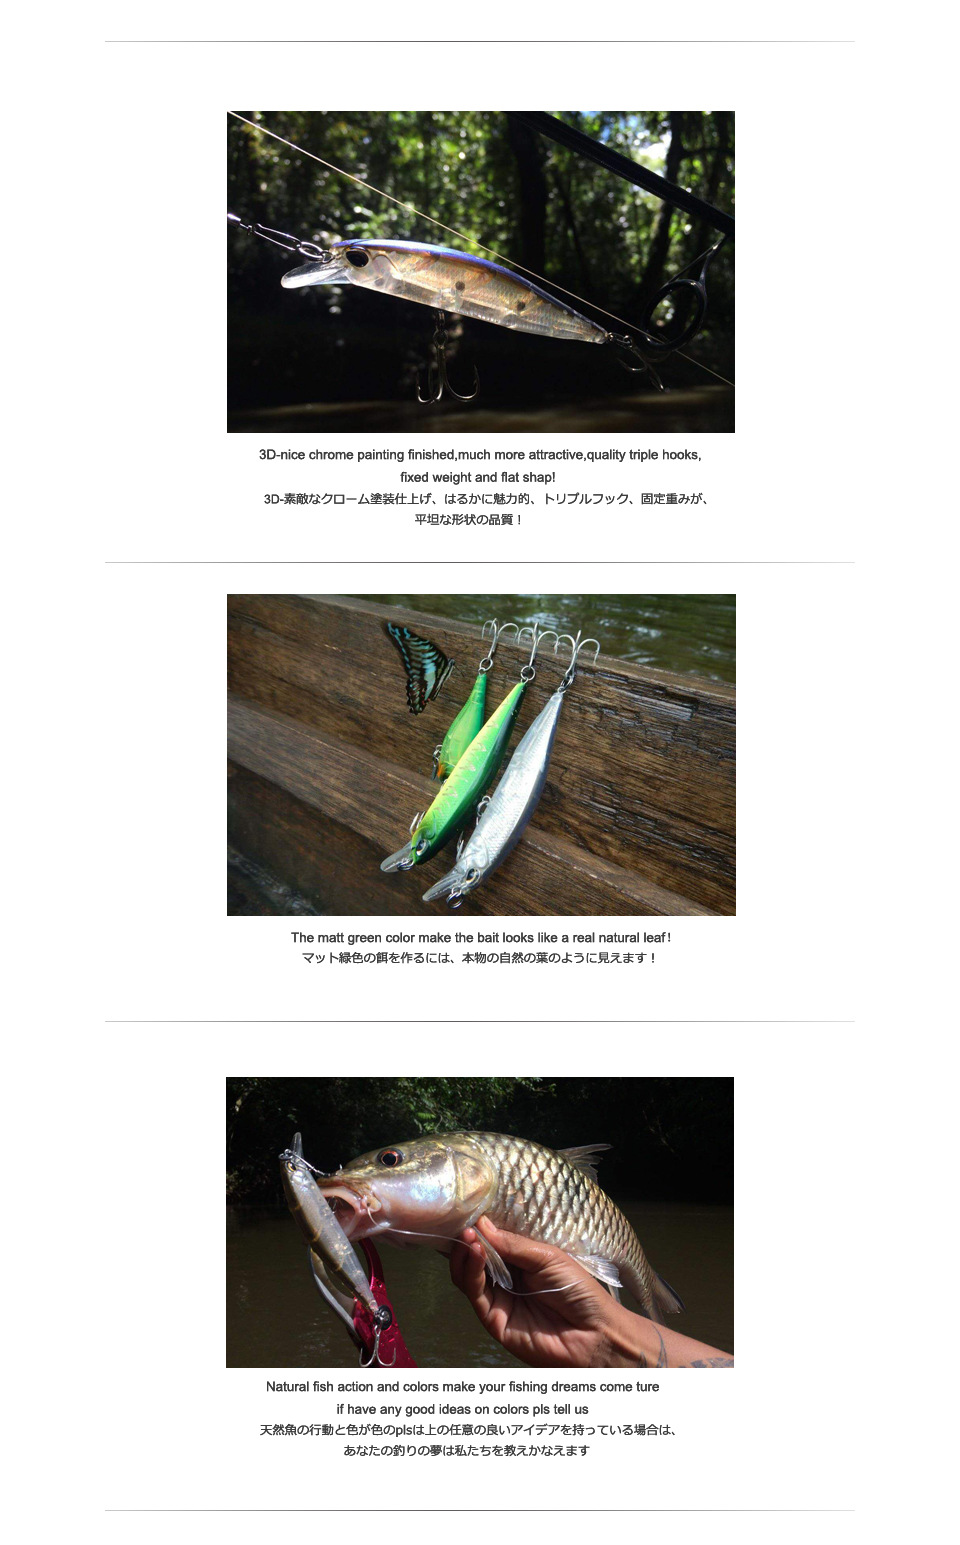 Bearking 10cm 15g hot model fishing lures hard bait 14color for choose minnow,quality professional minnow depth0.8-1.5m